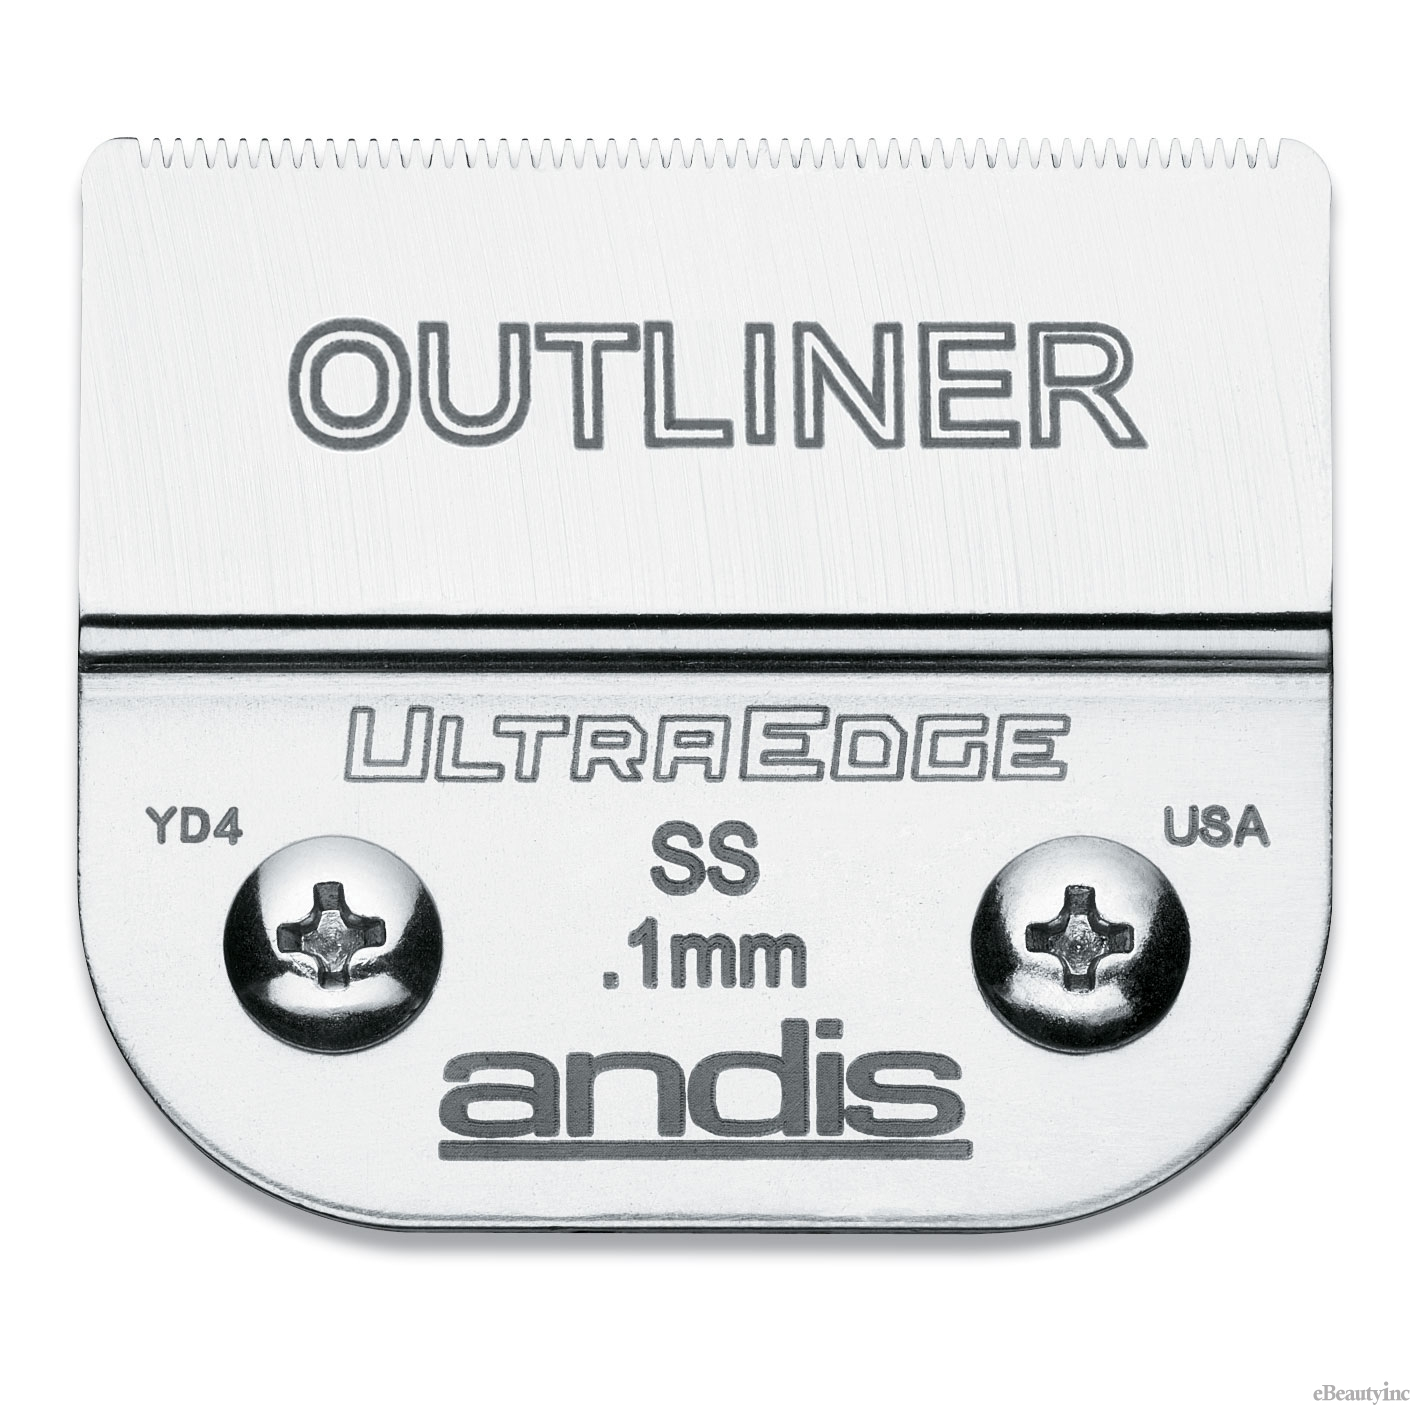 Image of Andis UltraEdge Detachable Clipper Blade #Outliner Fits BGRC, Oster 76 - 64160